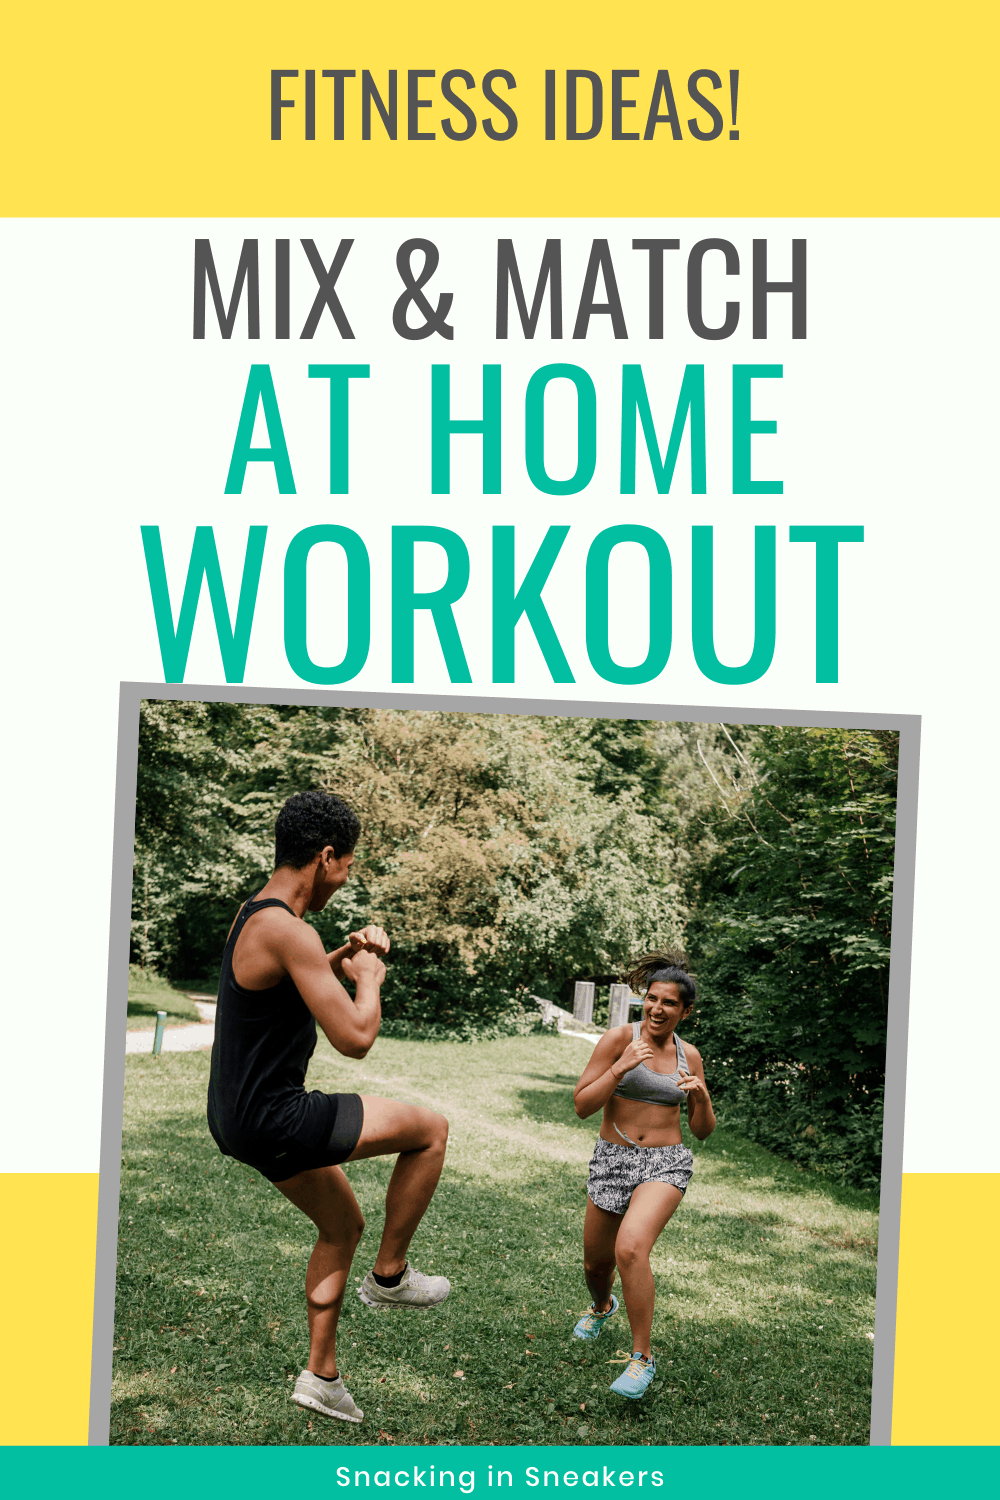 A couple doing an at home workout